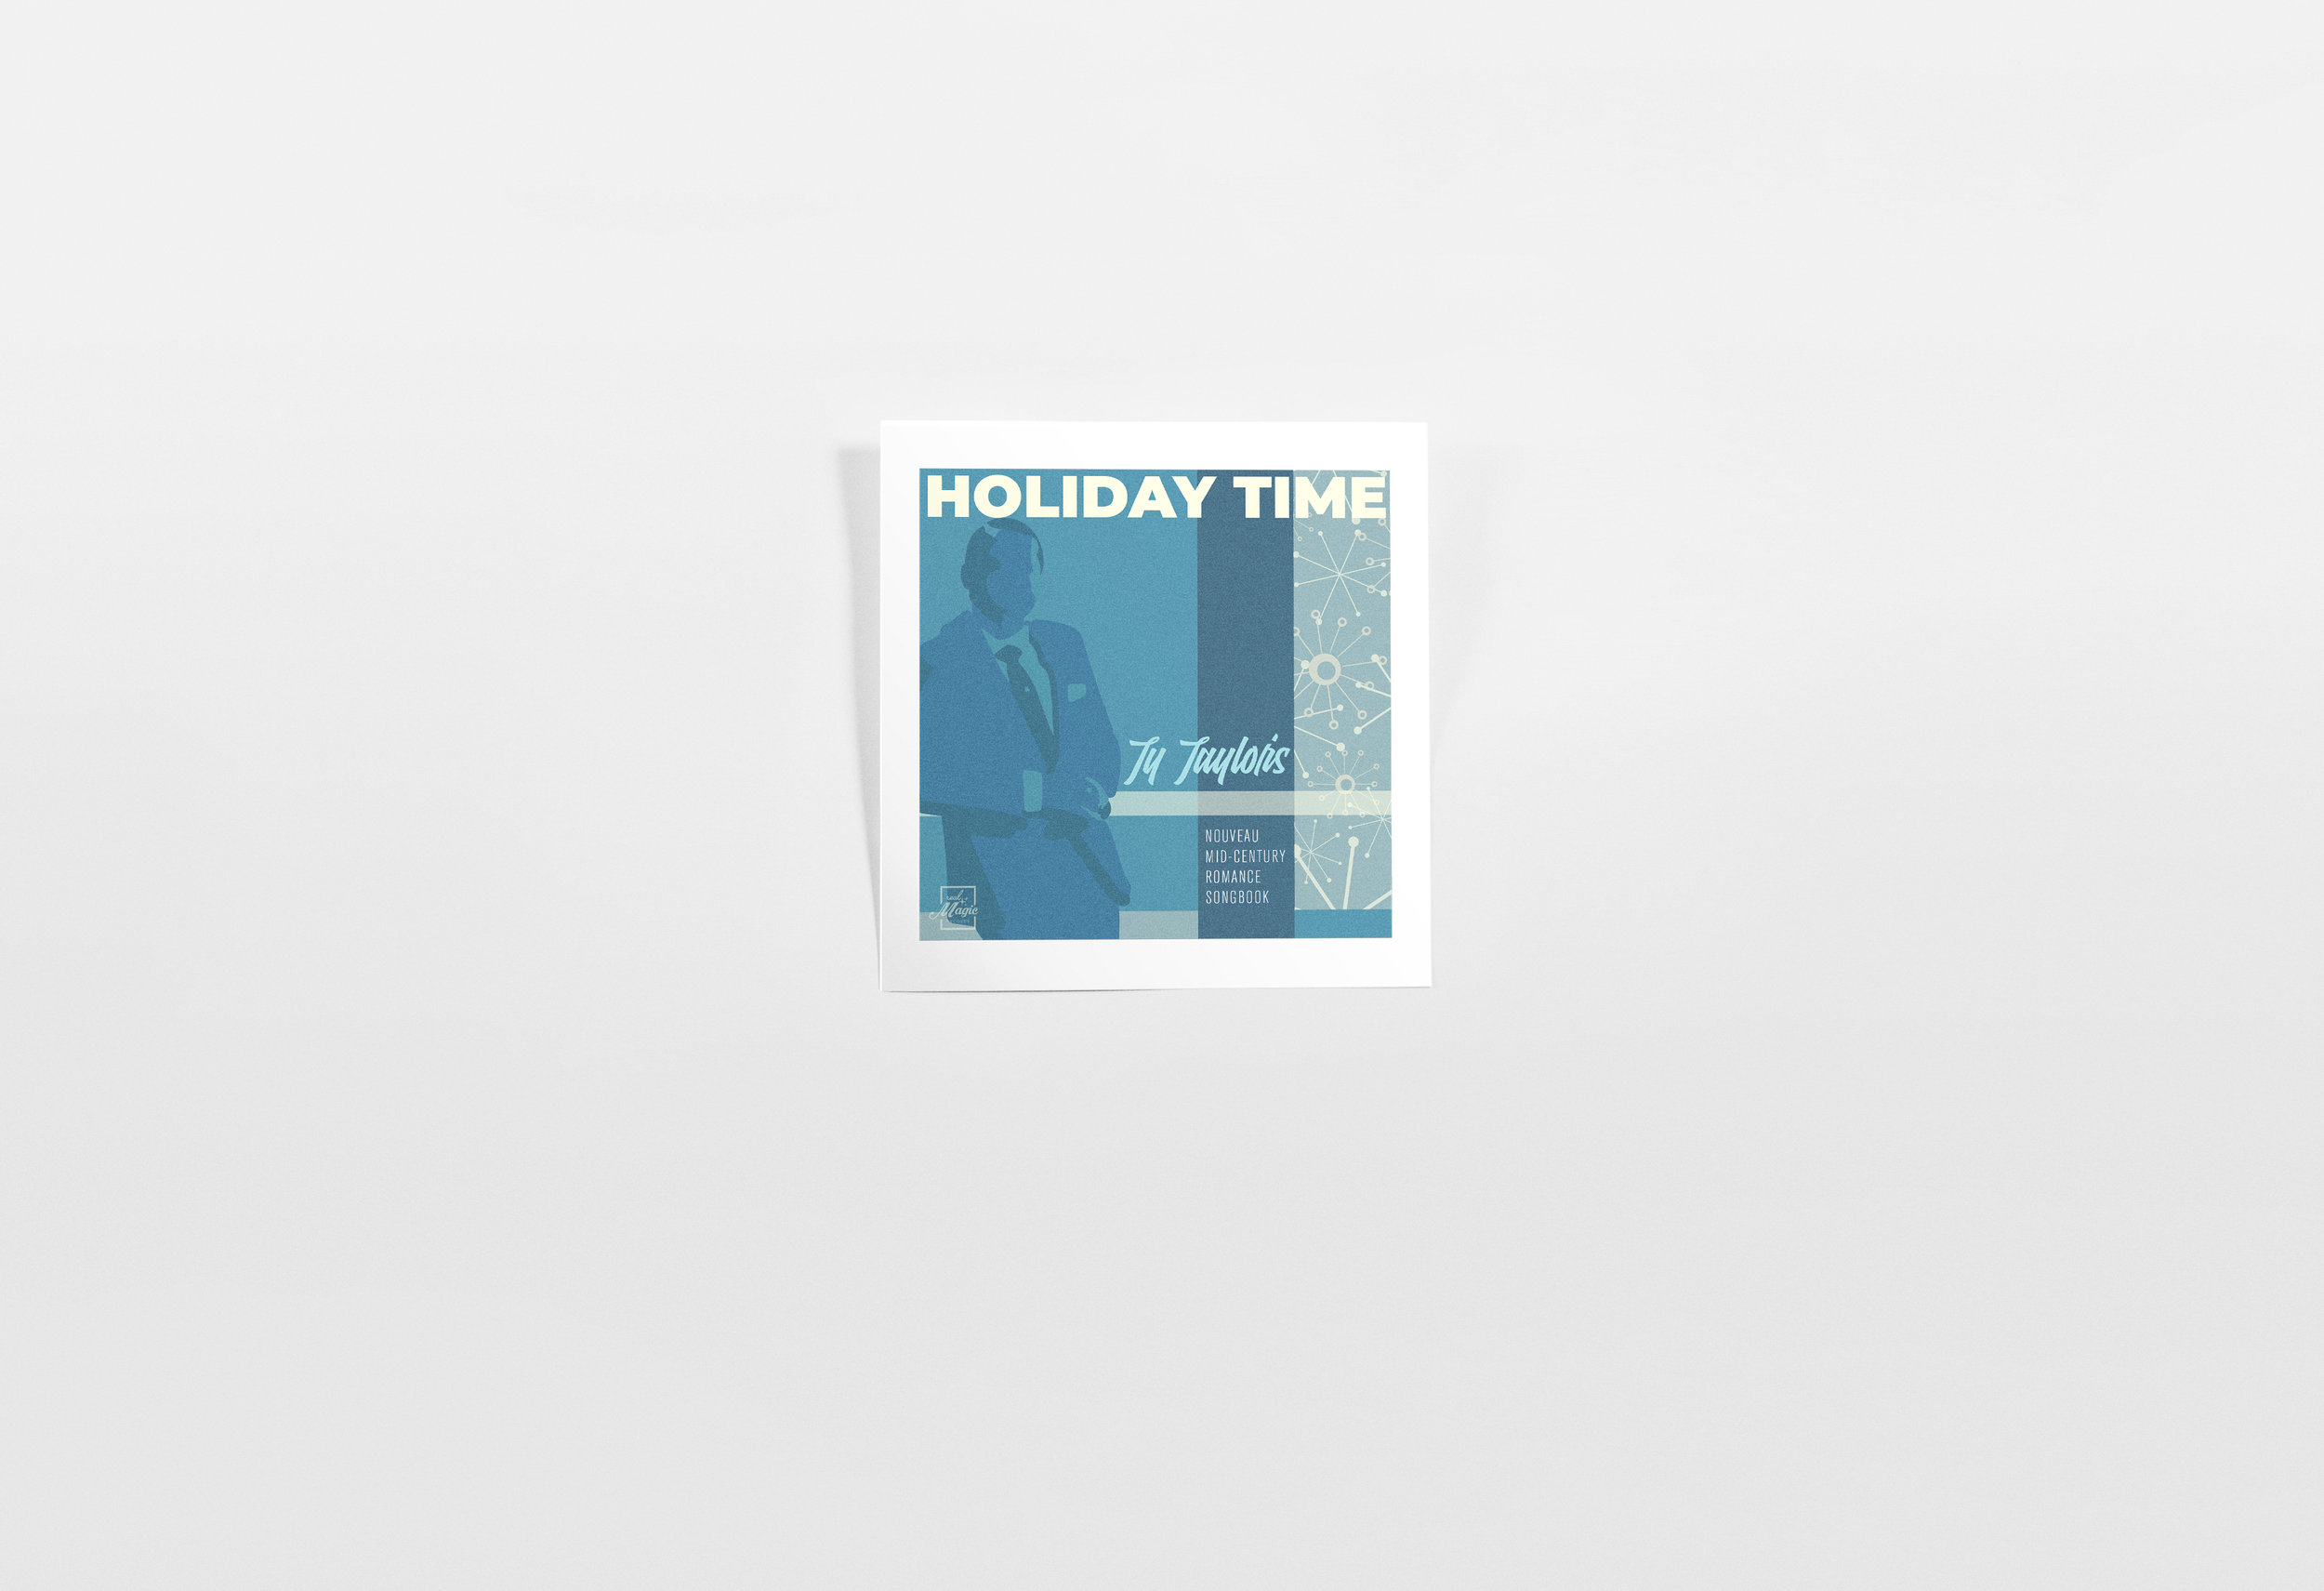 holiday_time_poster.jpg